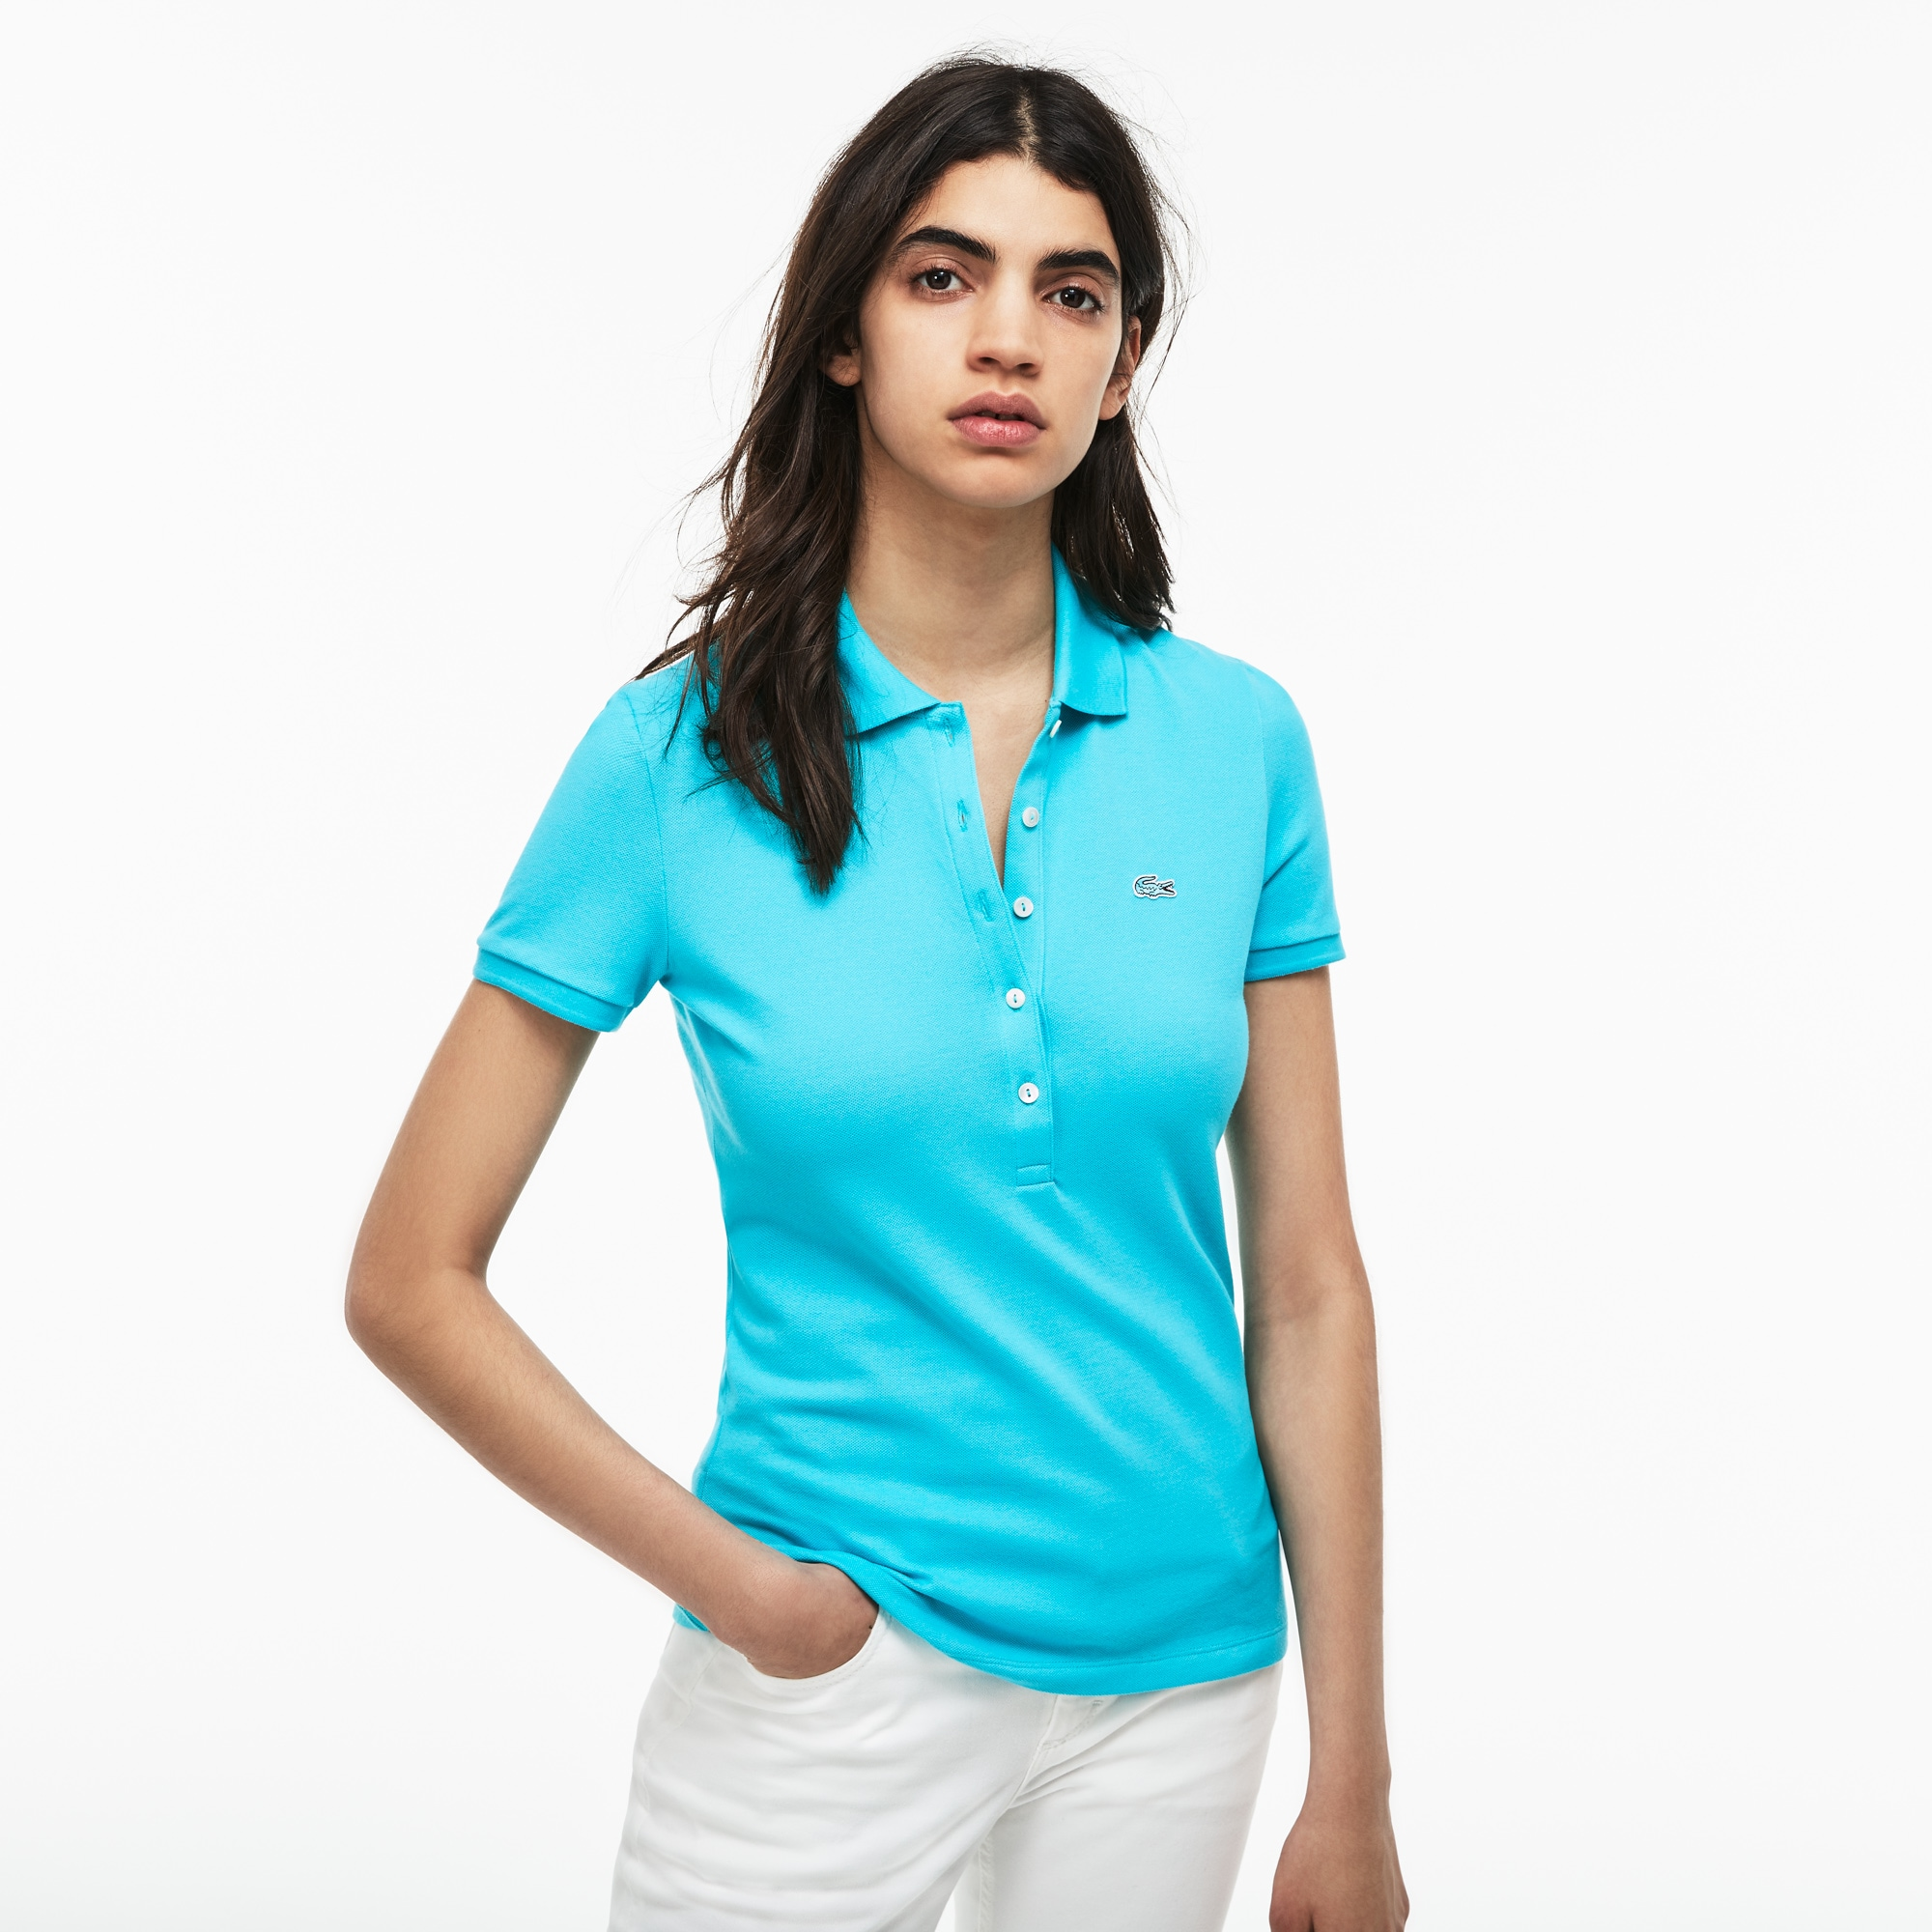 Women's Slim Fit Stretch Piqué Polo